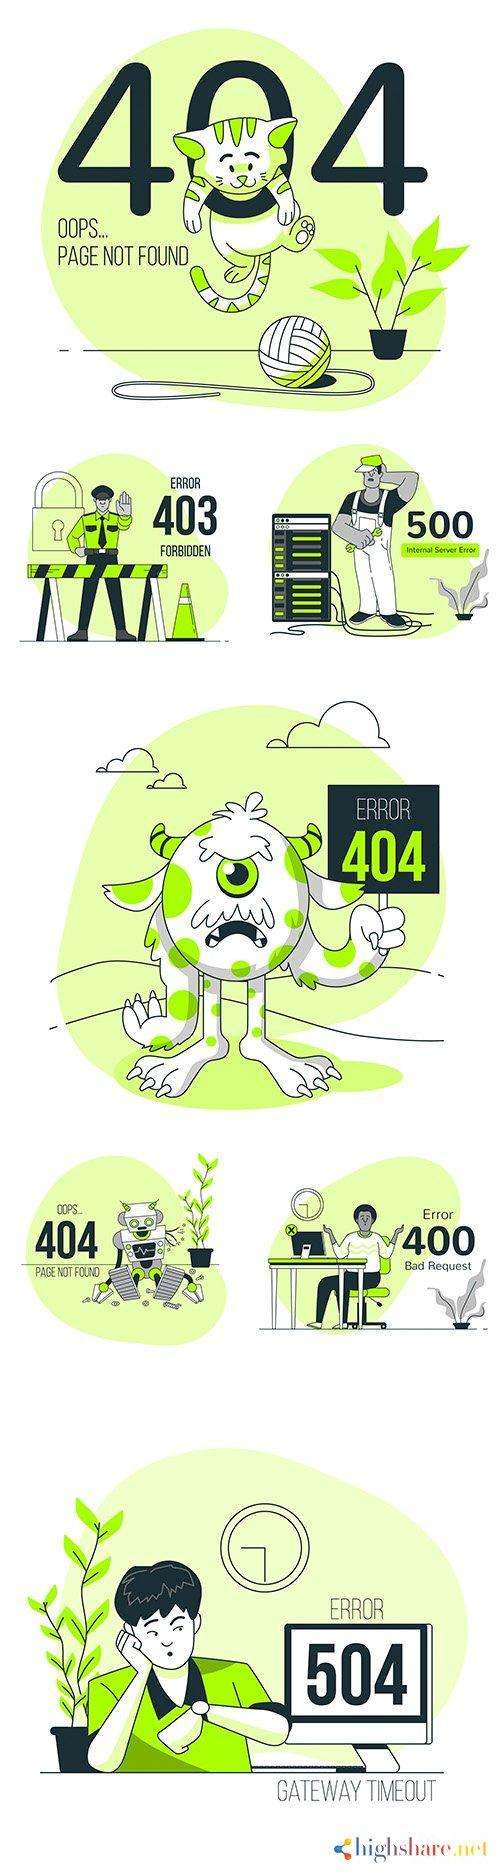 sorry no page and error code found by concept illustration 3 5f428185ad1f0 - Sorry, no page and error code found by concept illustration 3